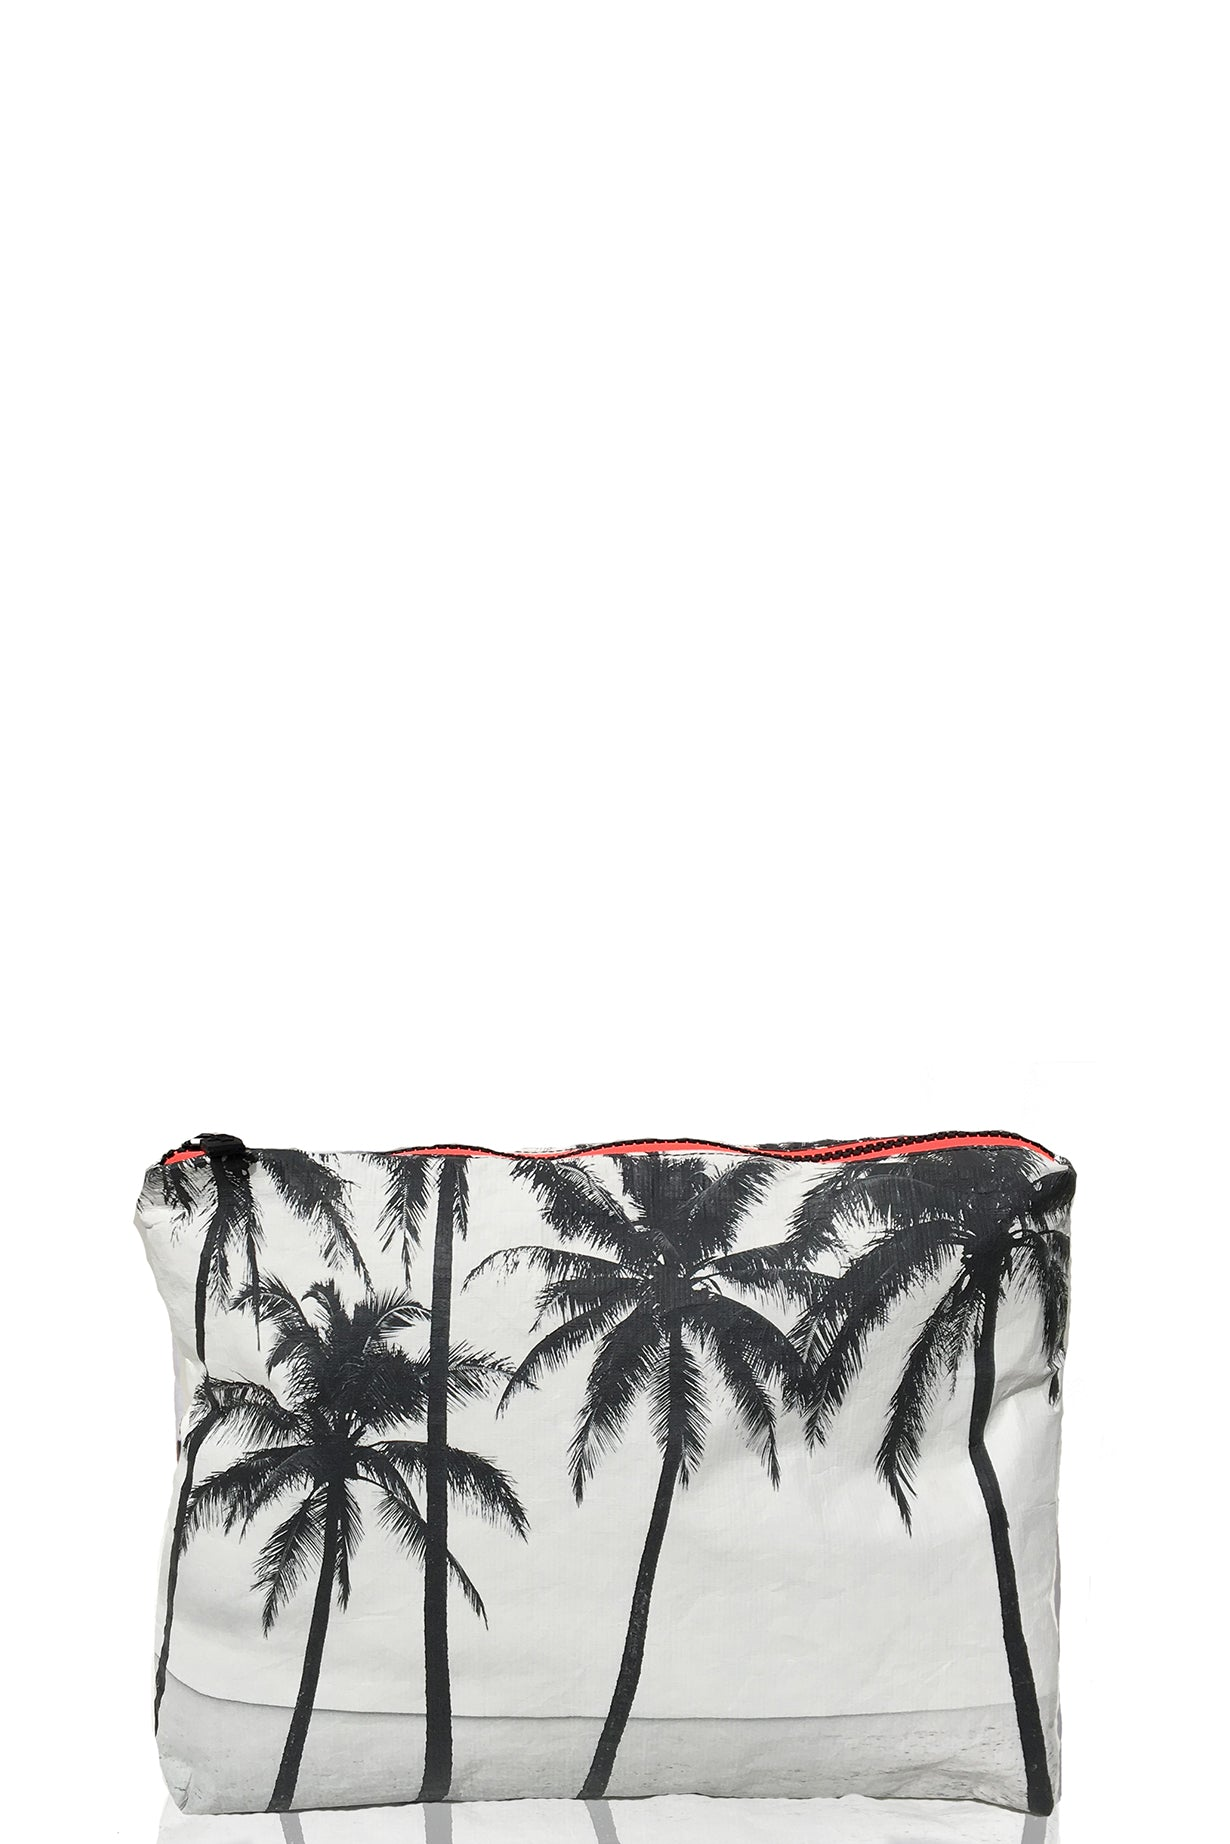 ALOHA Collection Samudra Small Pouch in Kalapana